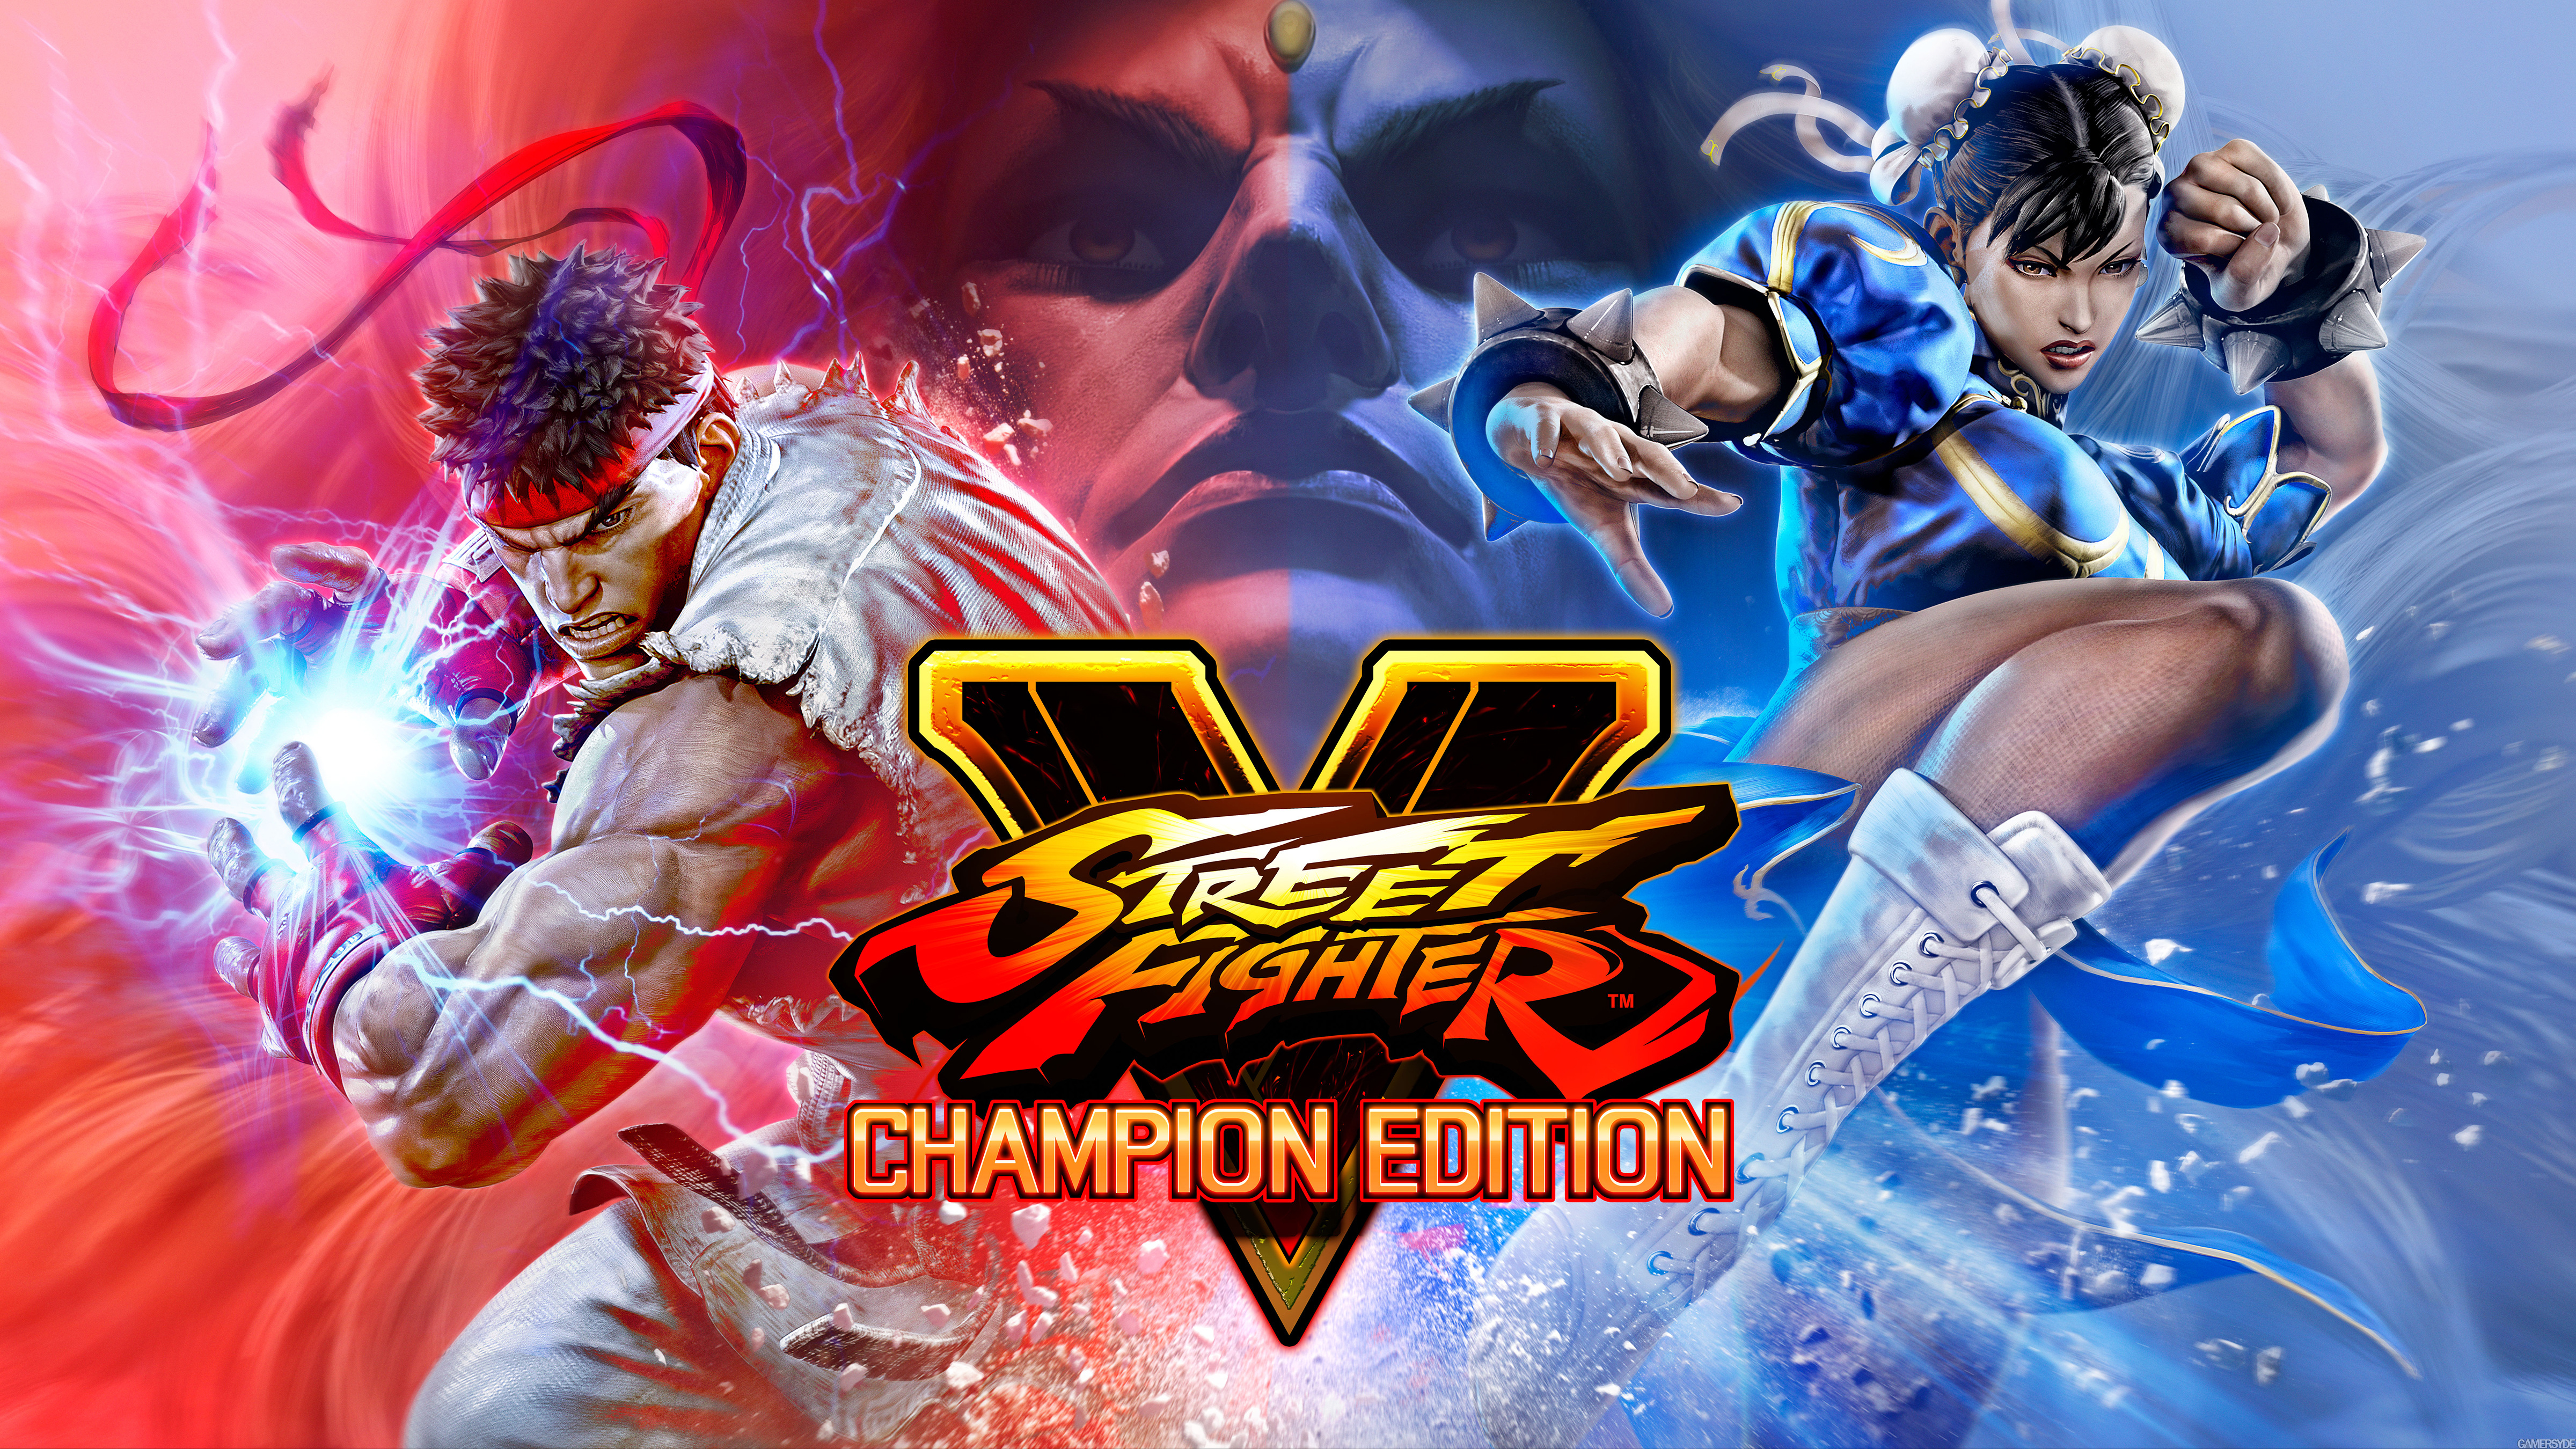 Street Fighter V Champion Edition Hd Games 4k Wallpapers Images